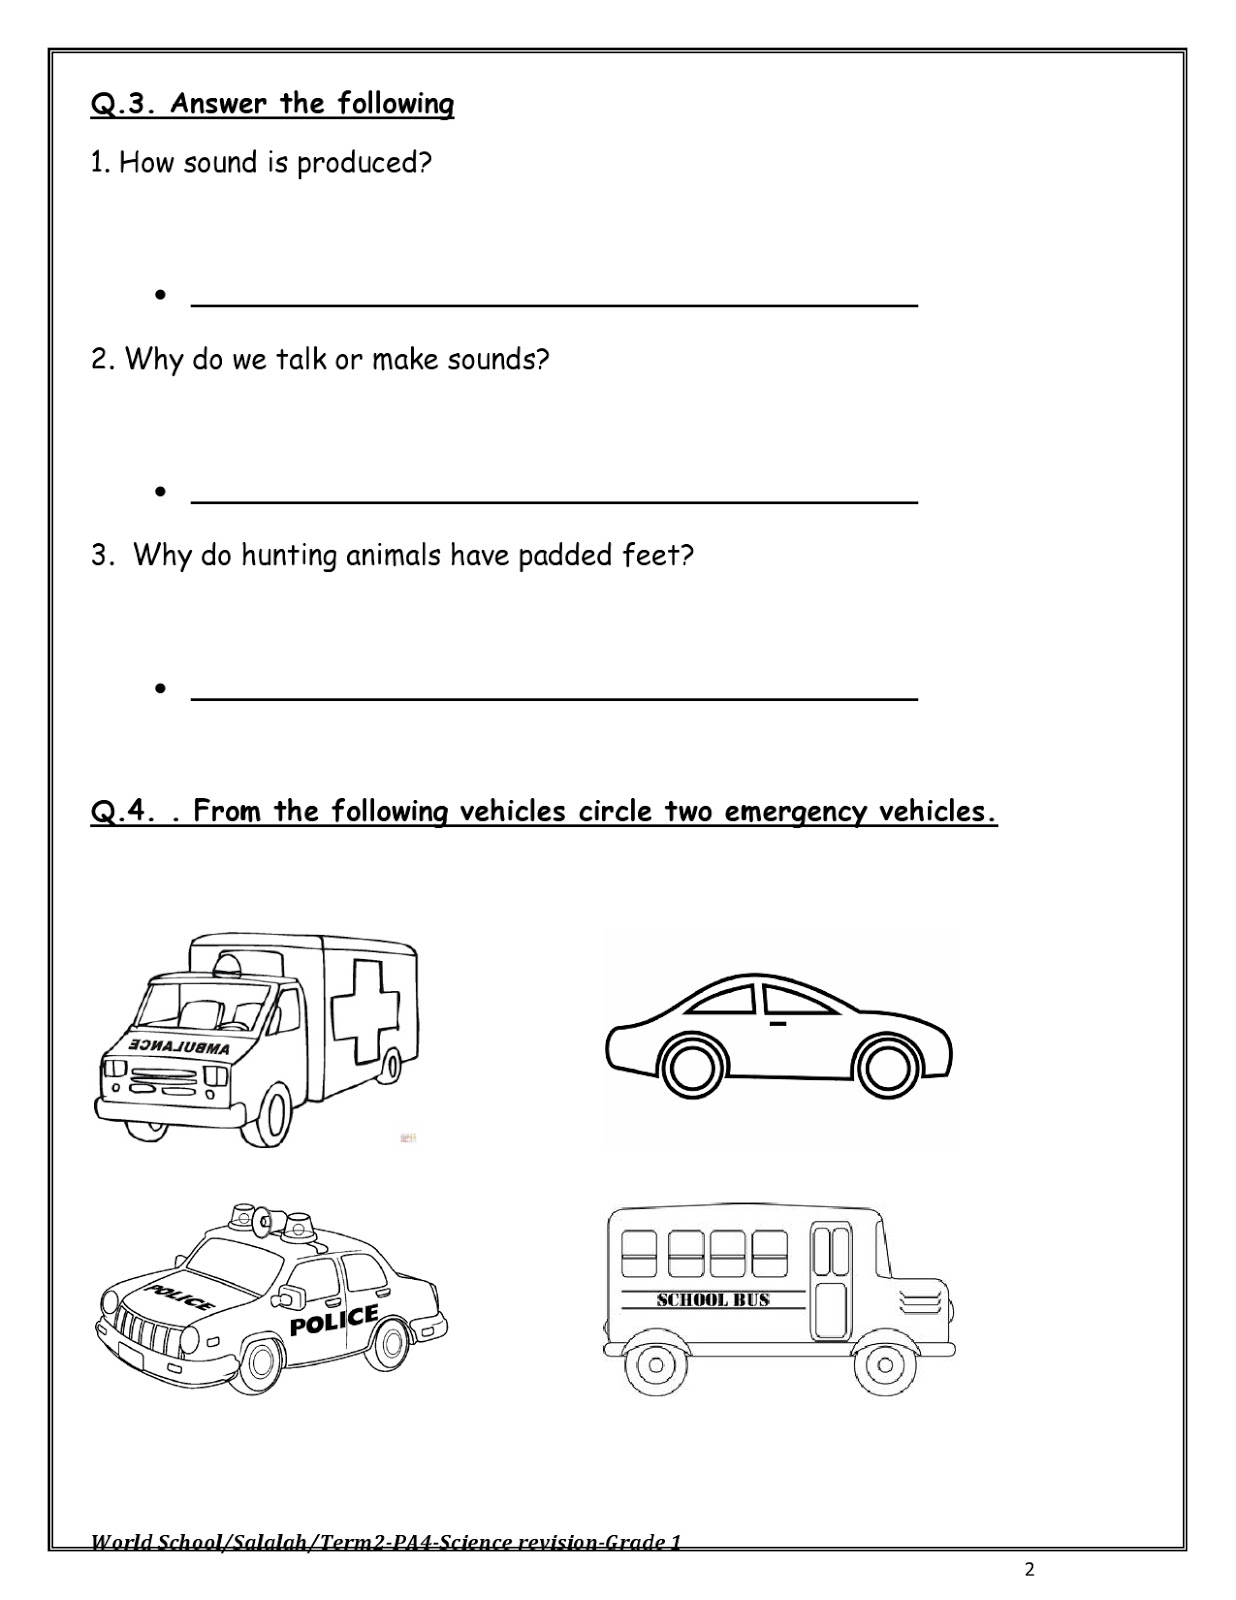 Birla World School Oman Homework For Grade 1 As On 11 04